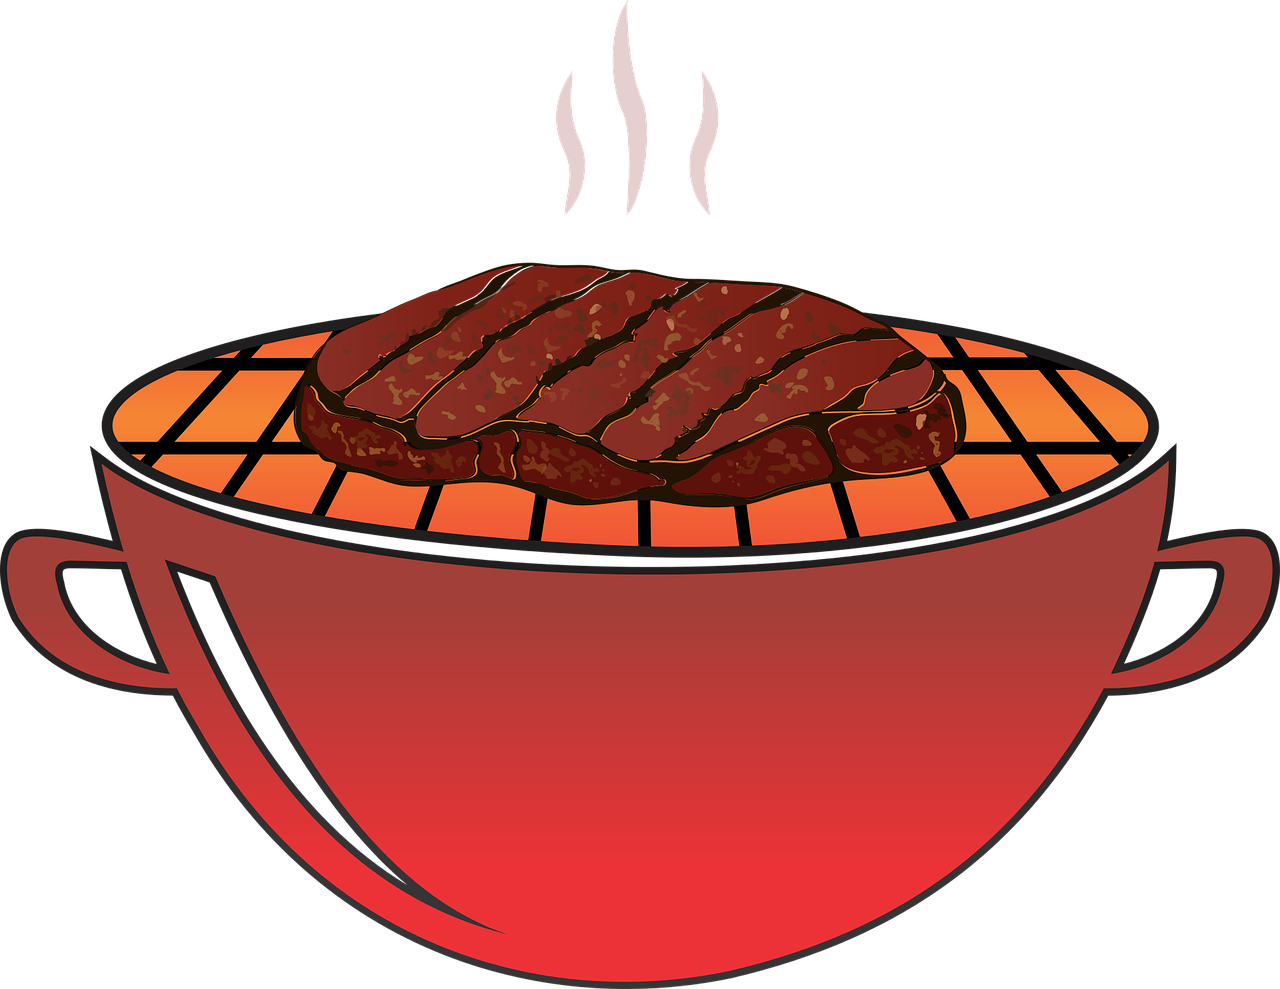 Bbq clipart bbq beef. Barbecue png freeuse